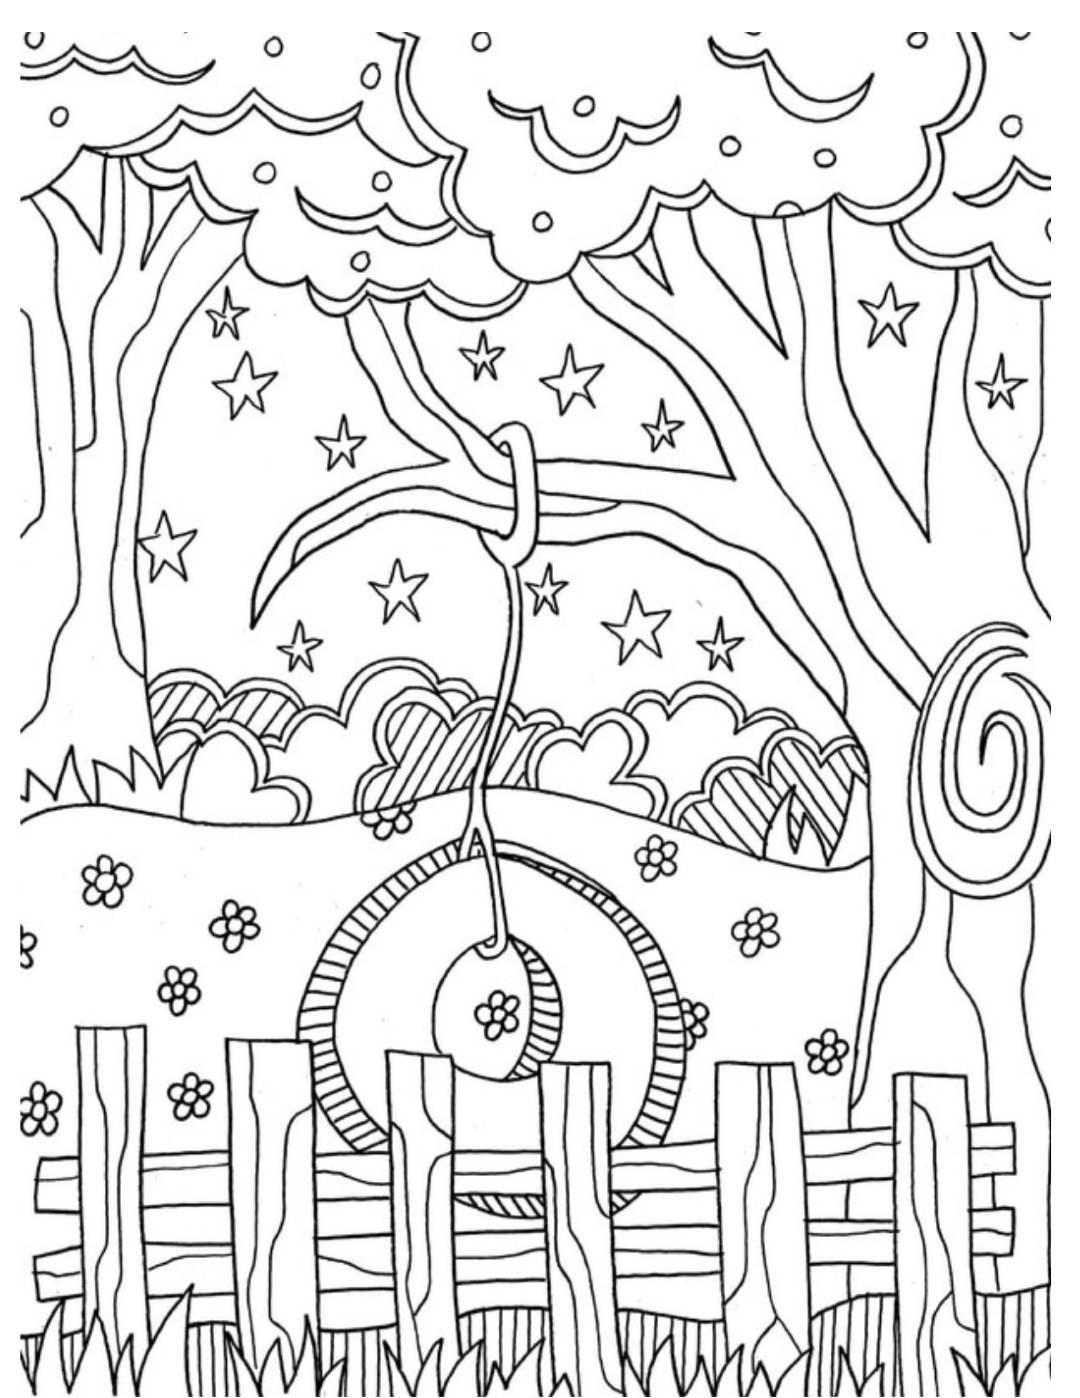 coloring pages for summer summer coloring pages for kids coloring pages for kids pages for summer coloring